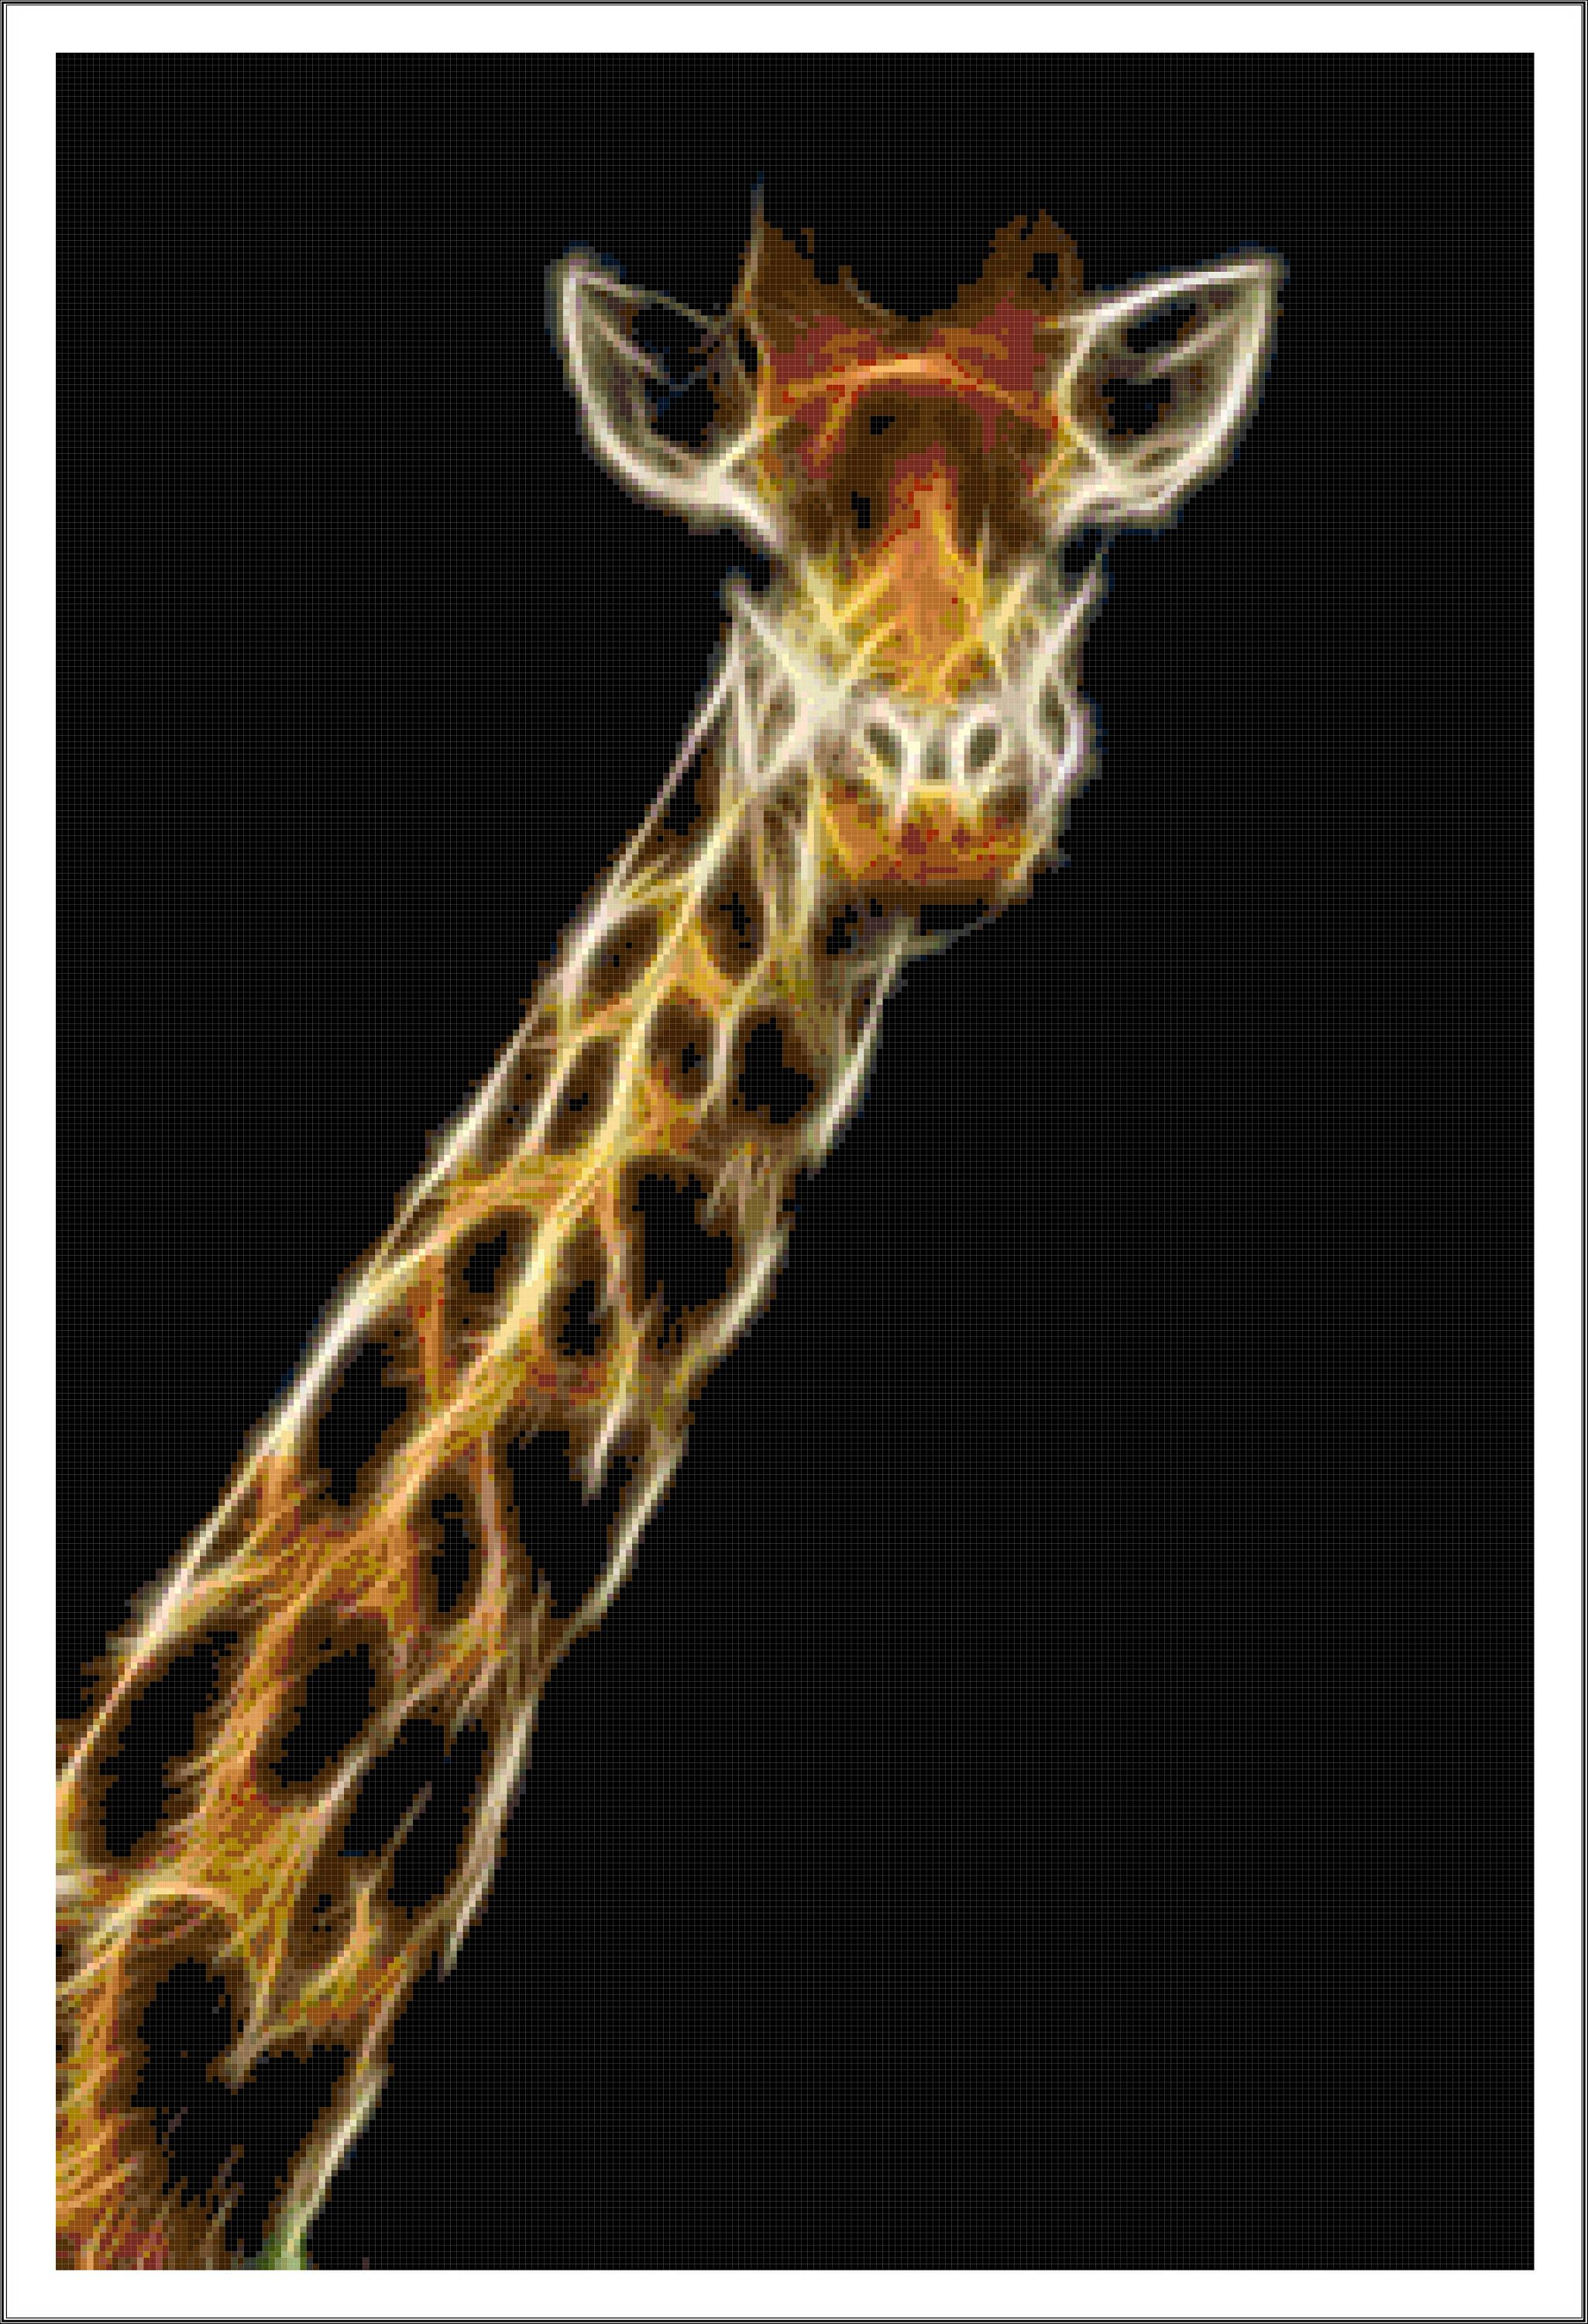 Fractal april the giraffe tribute cross stitch printable needlework